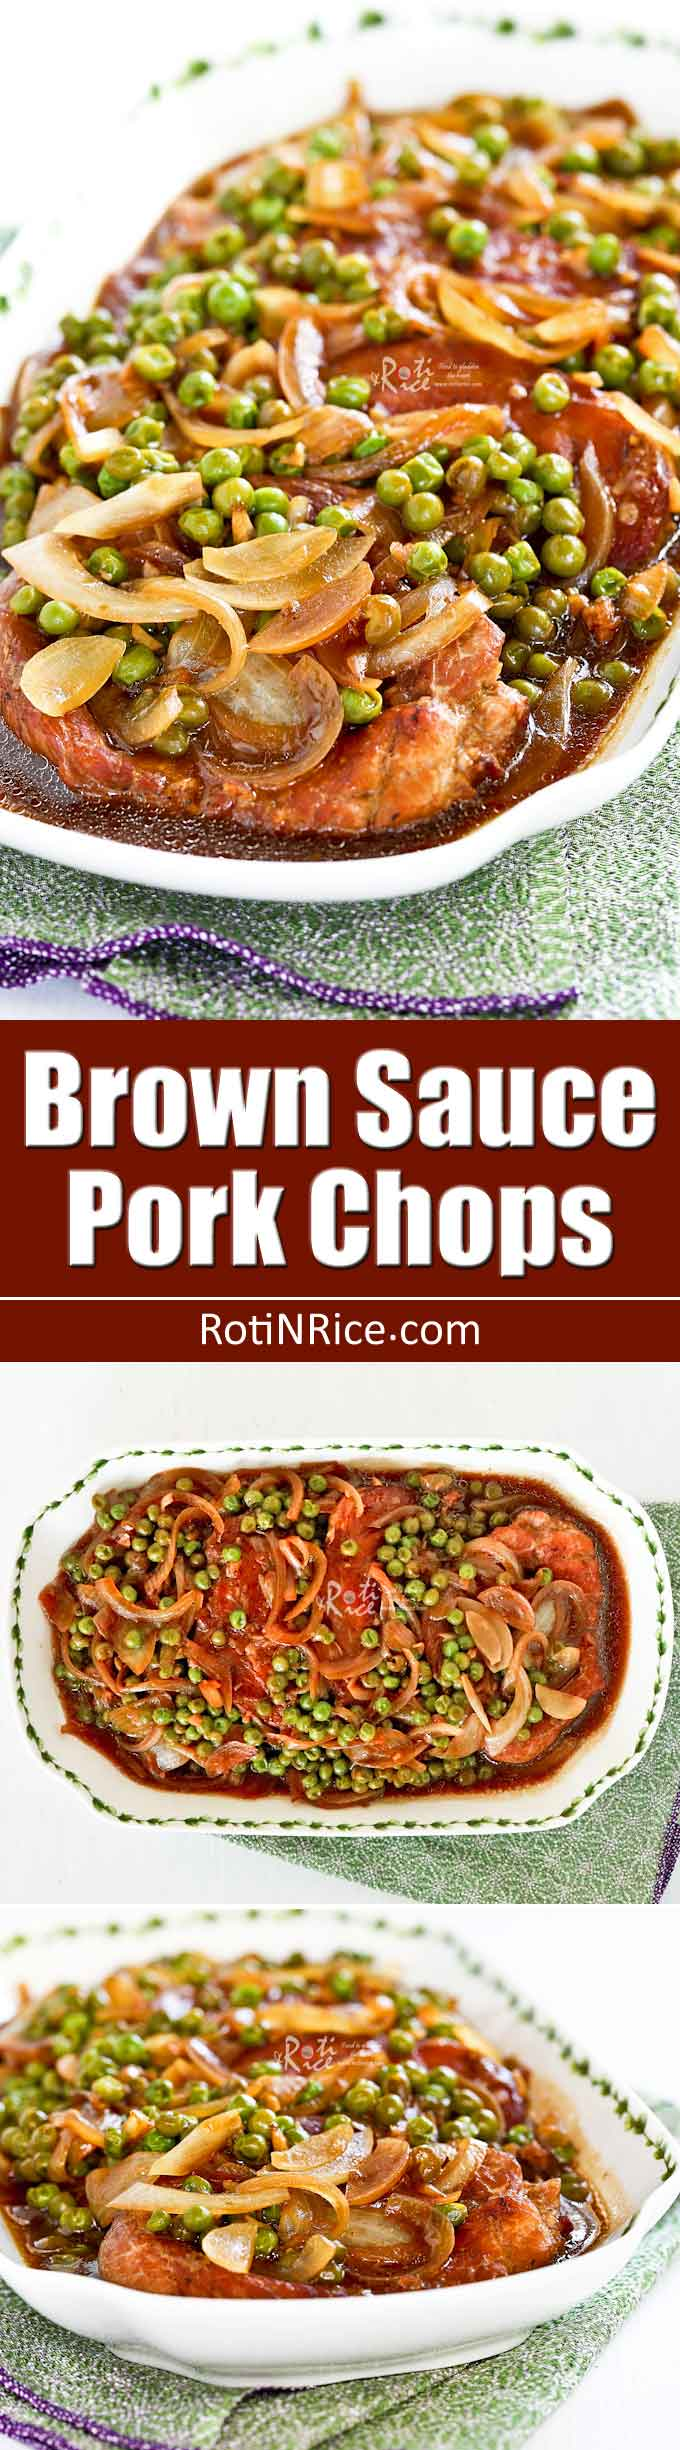 Delicious home style Brown Sauce Pork Chops with green peas. Only 30 minutes to prepare. Great for busy week nights or lazy weekends. | RotiNRice.com